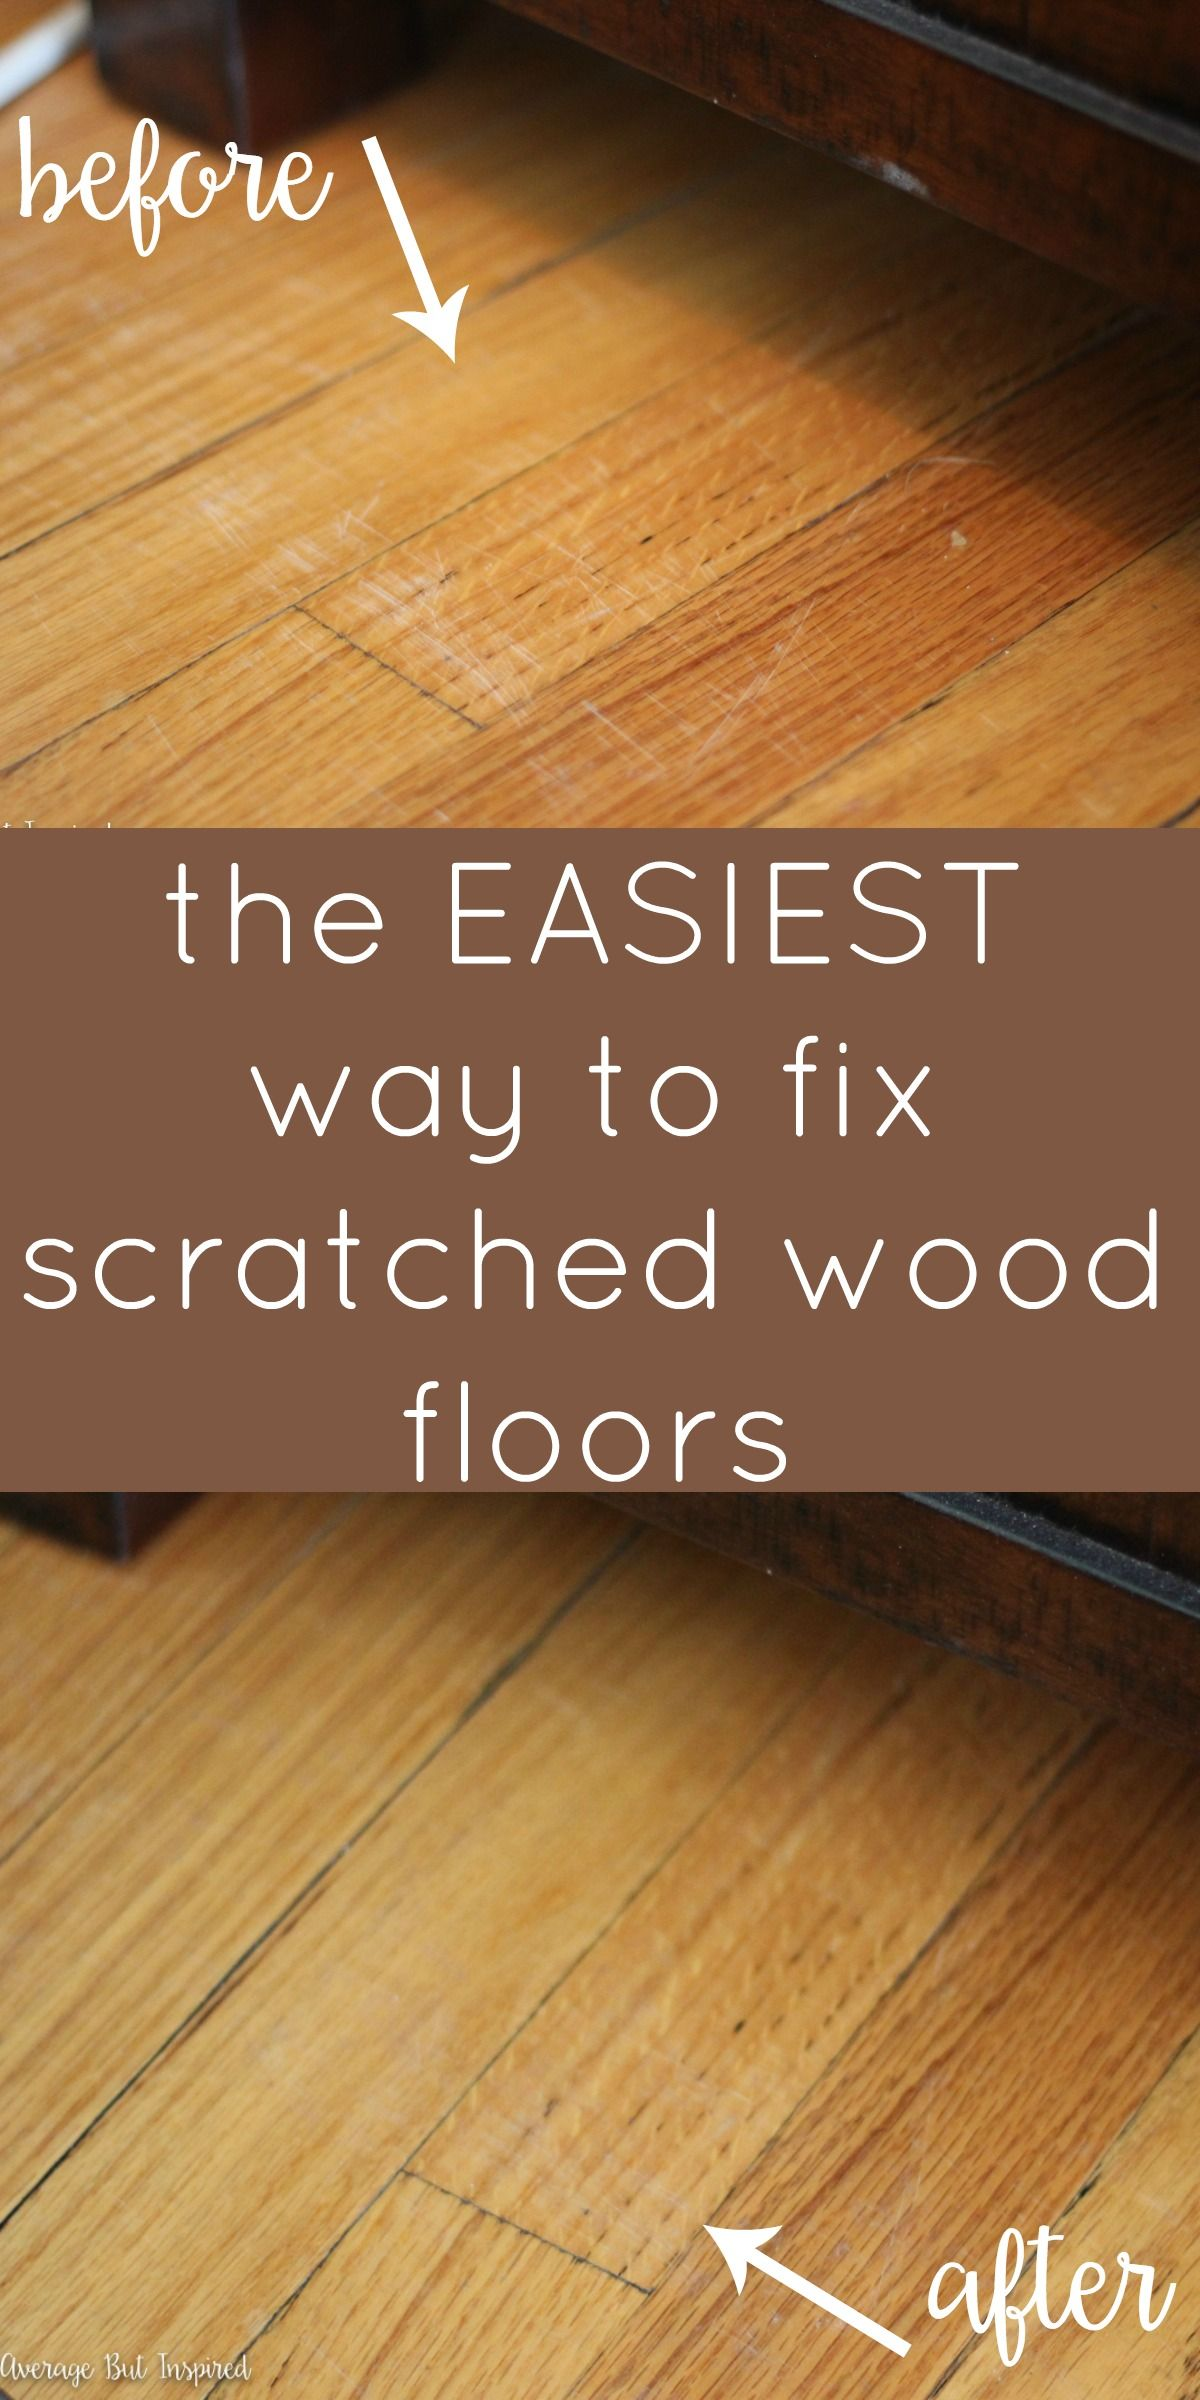 How to fix hardwood floors that squeak - How To Fix Scratched Hardwood Floors In No Time